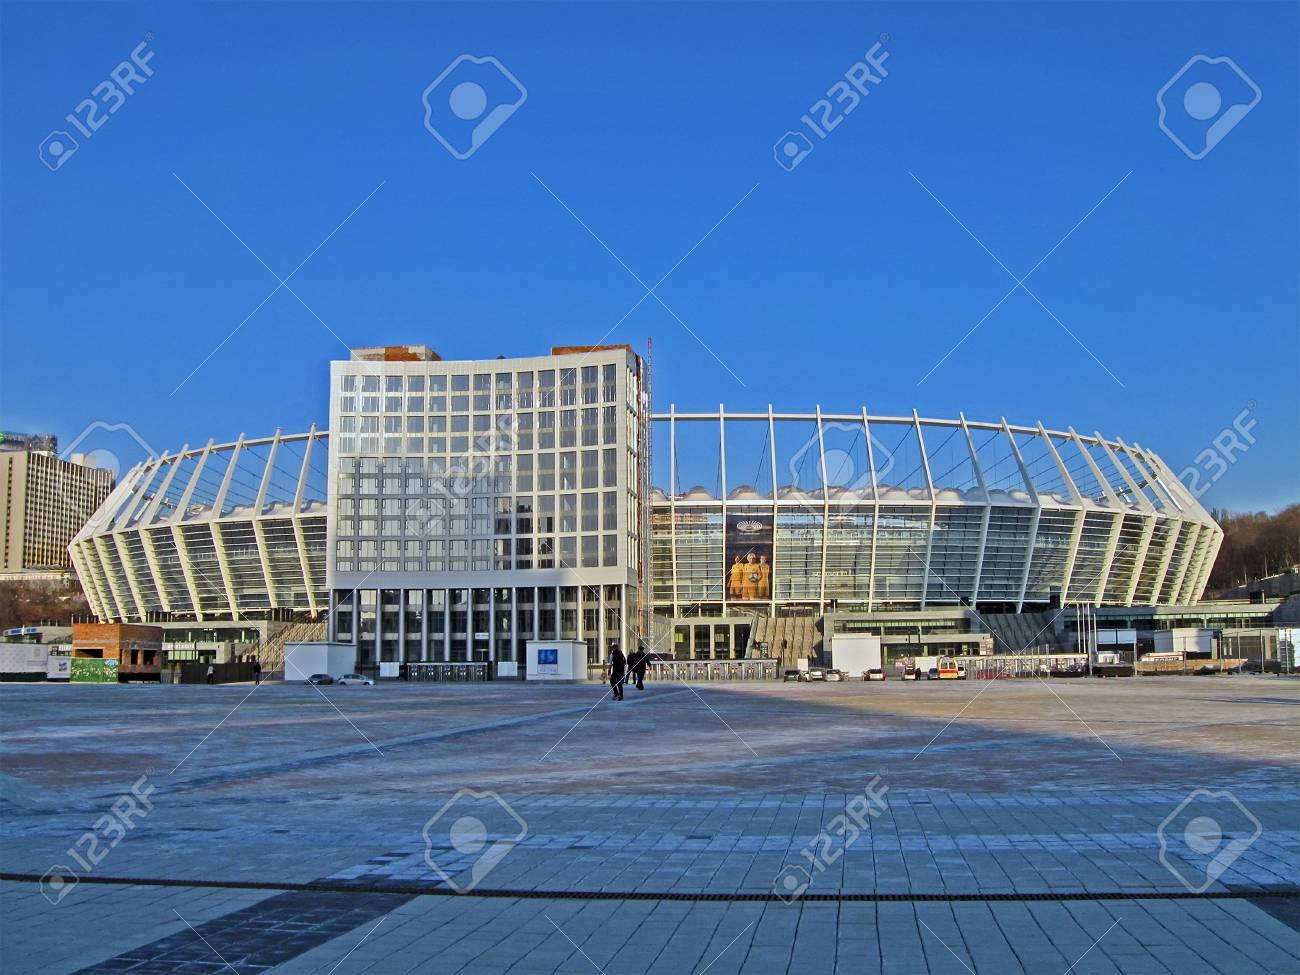 KIEV, UKRAINE - MARCH 20: Renewed Olympic Sport Stadium on March 20, 2012 in Kiev, UKRAINE. National Sport complex Olimpiysky selected as stadium for final EURO 2012 football championship in Ukraine. Stock Photo - 14136582